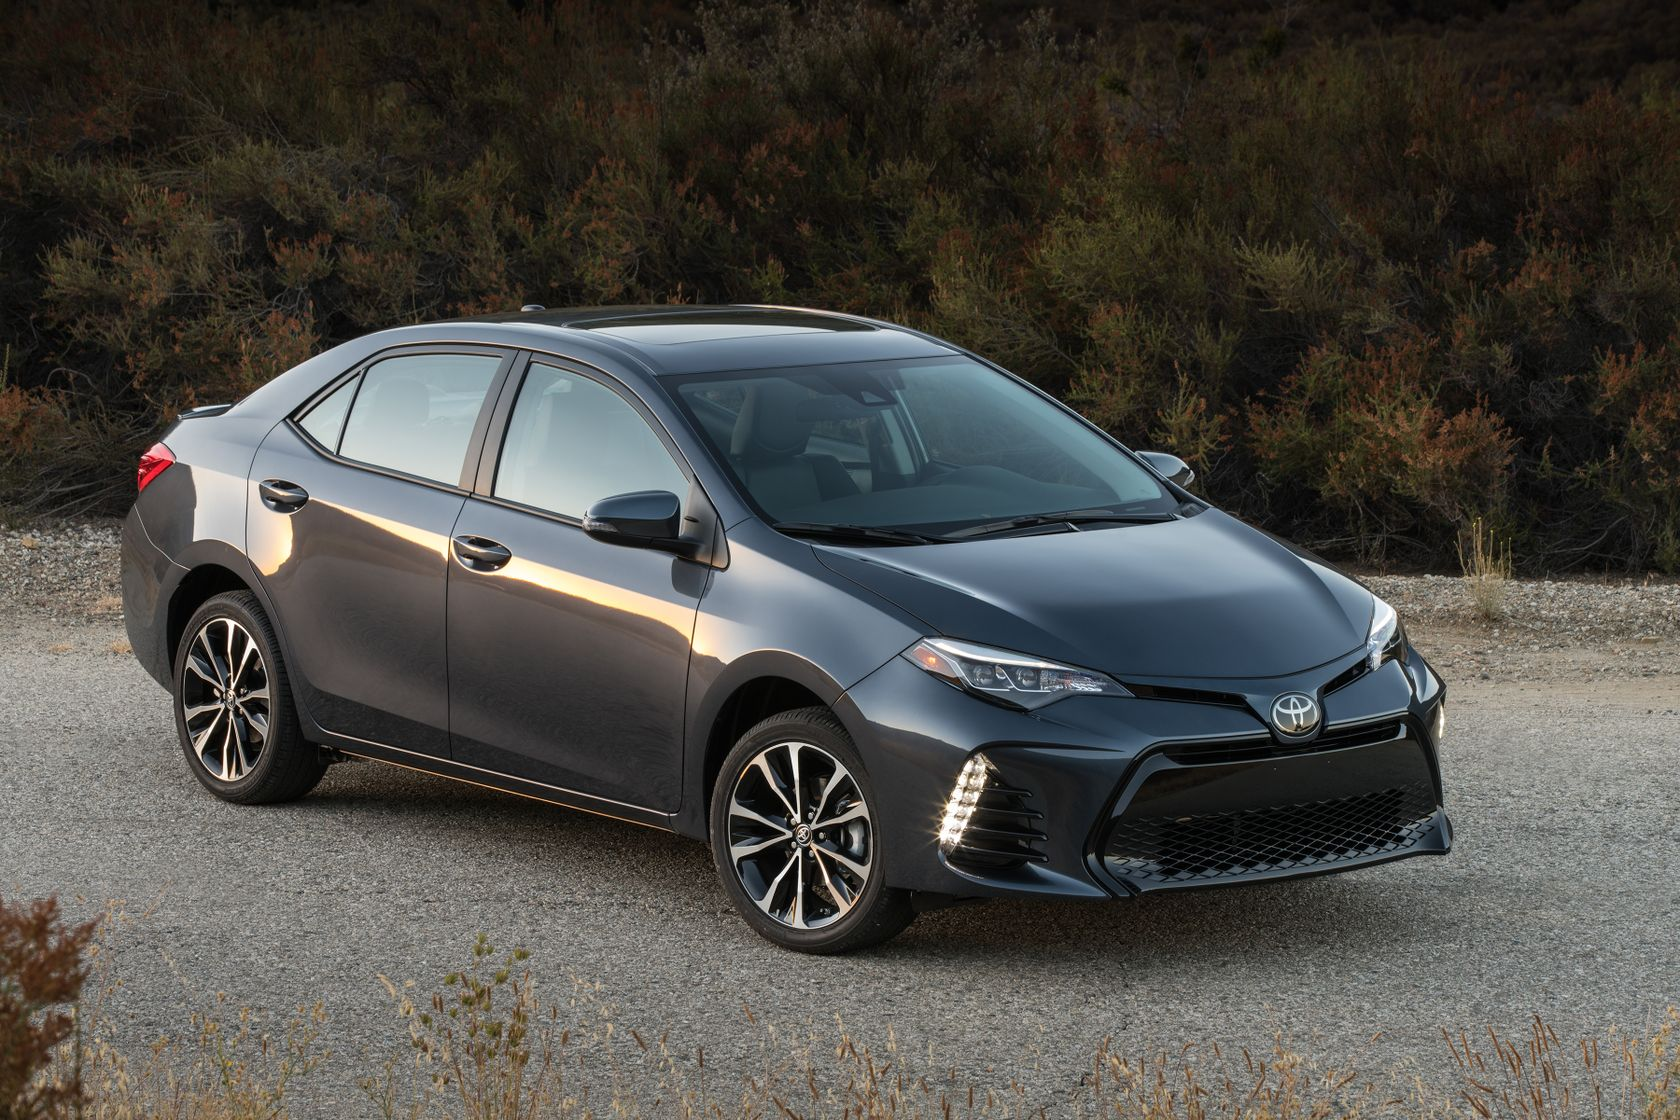 Introducing The 2018 Corolla: Canada's All-Time Favourite Toyota, with a New, Fully-Loaded XLE ...